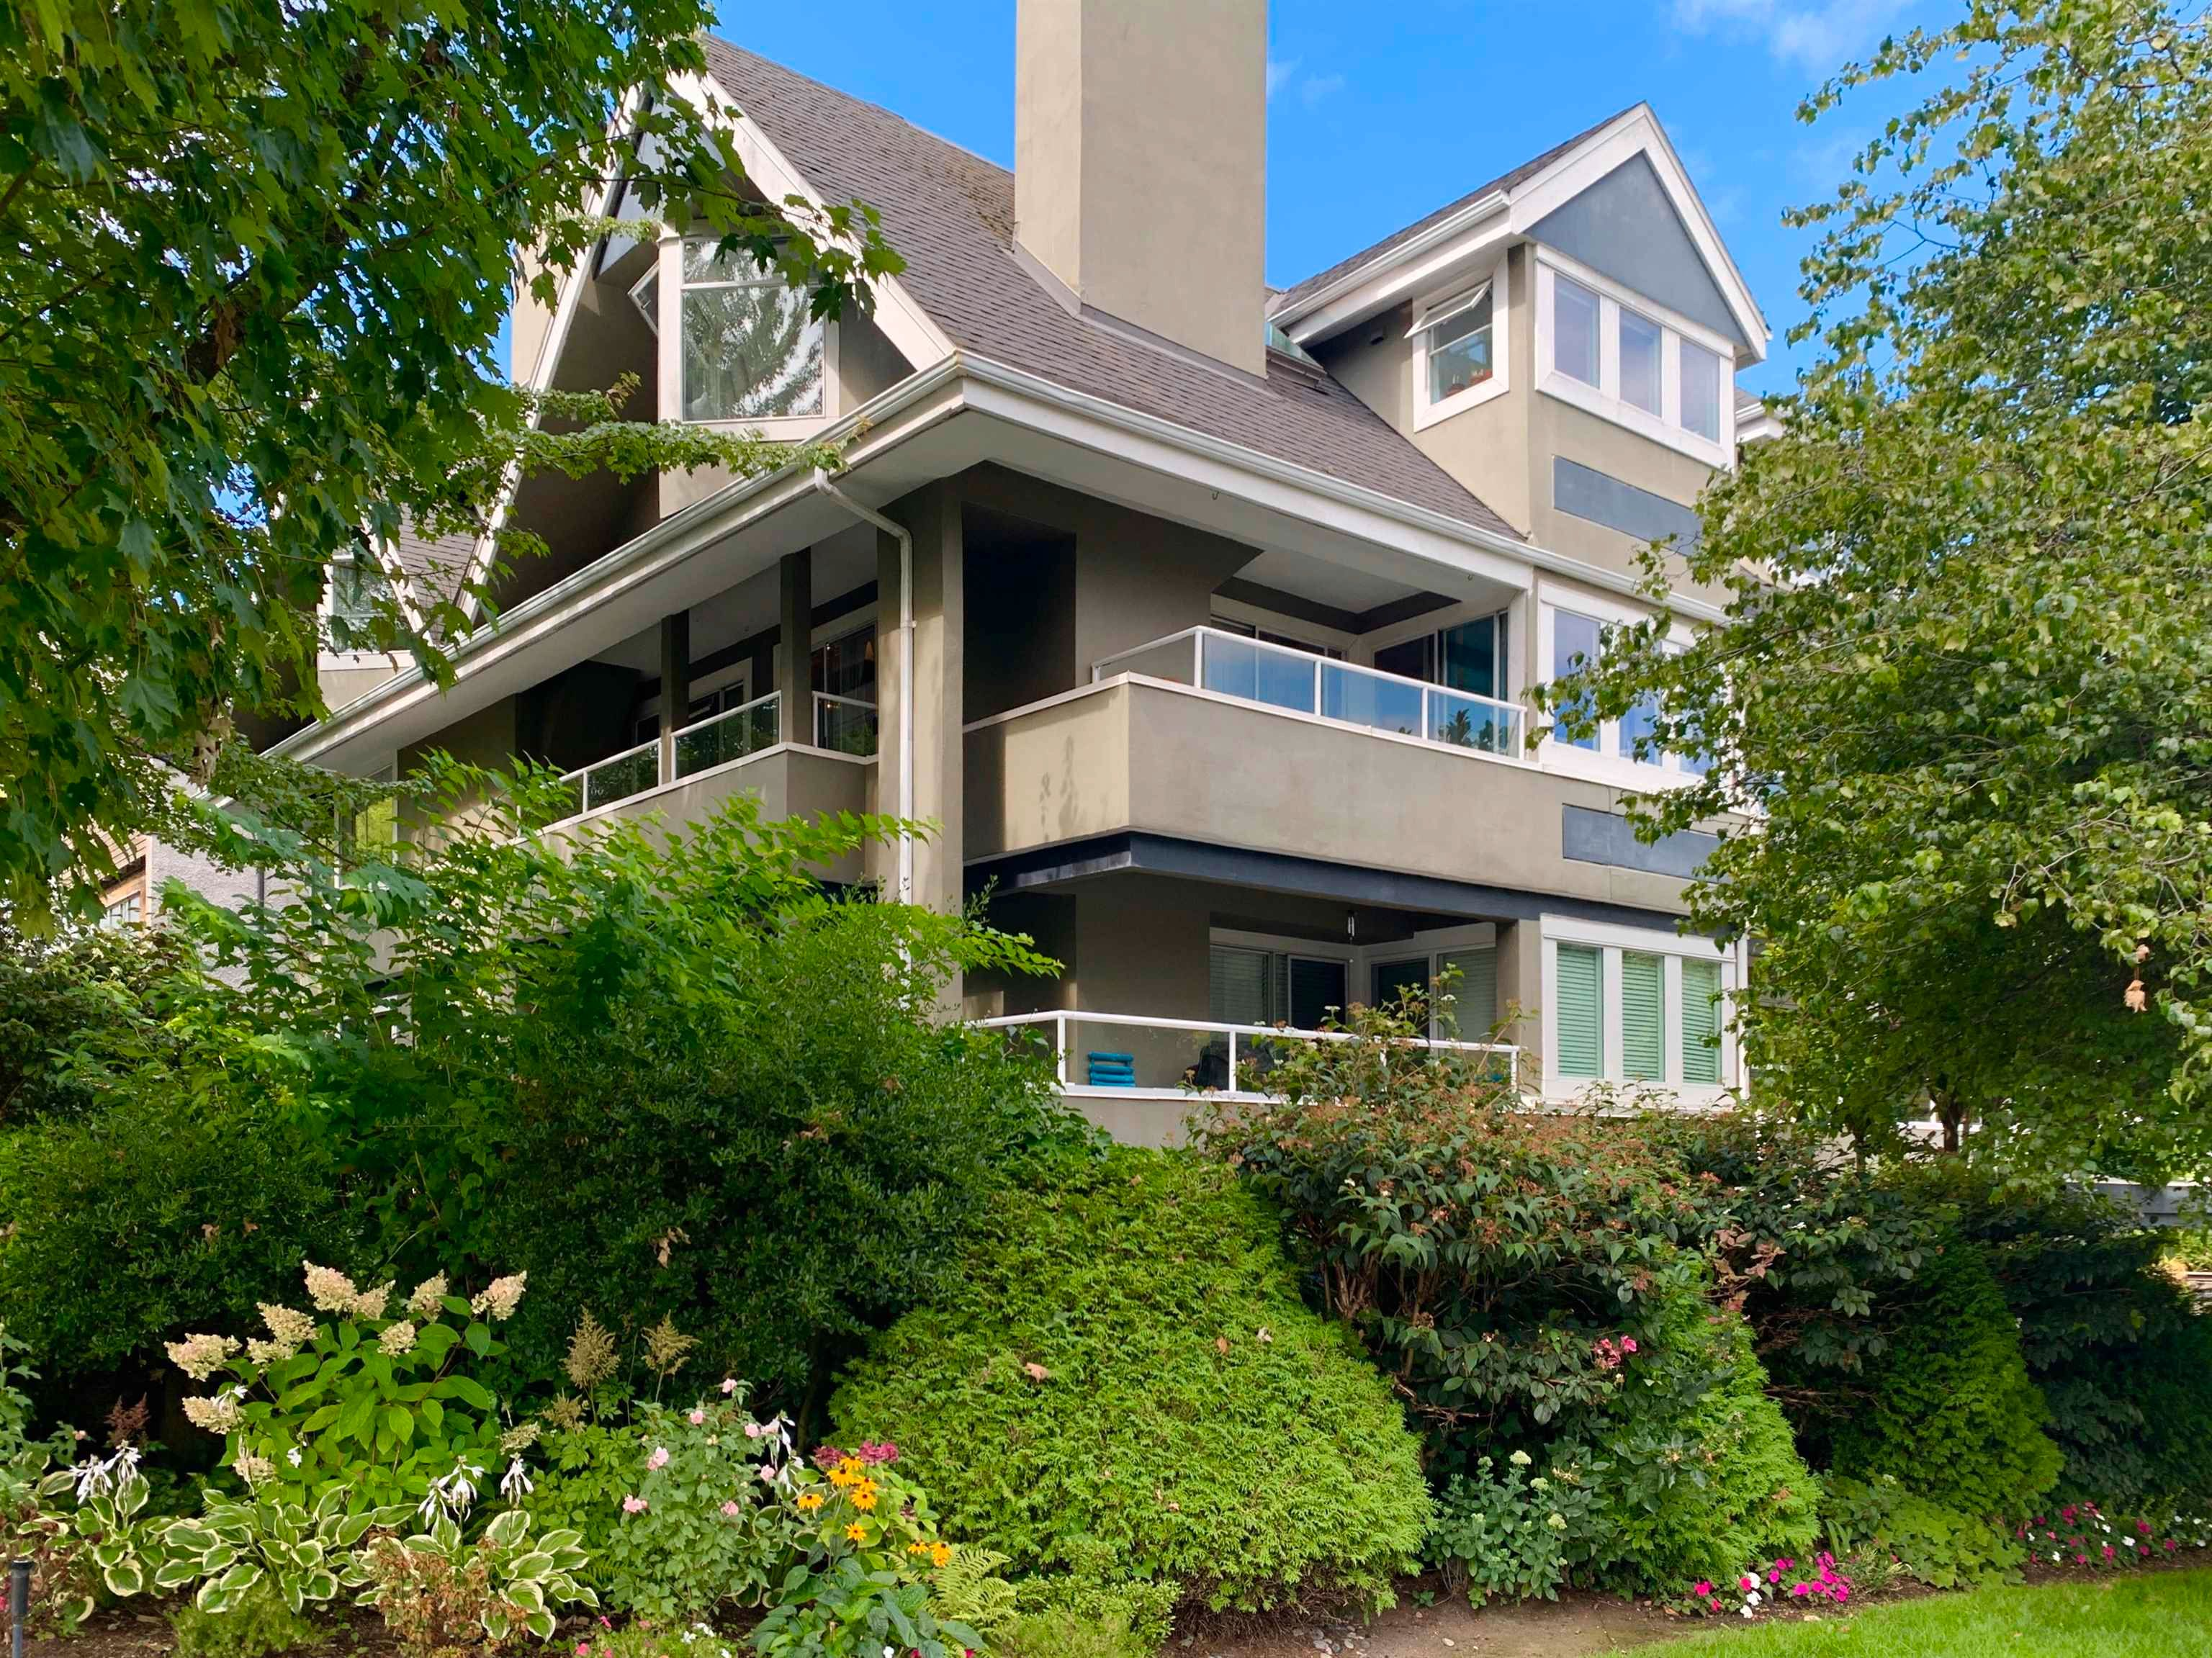 """Main Photo: 304 1665 ARBUTUS Street in Vancouver: Kitsilano Condo for sale in """"The Beaches"""" (Vancouver West)  : MLS®# R2612663"""